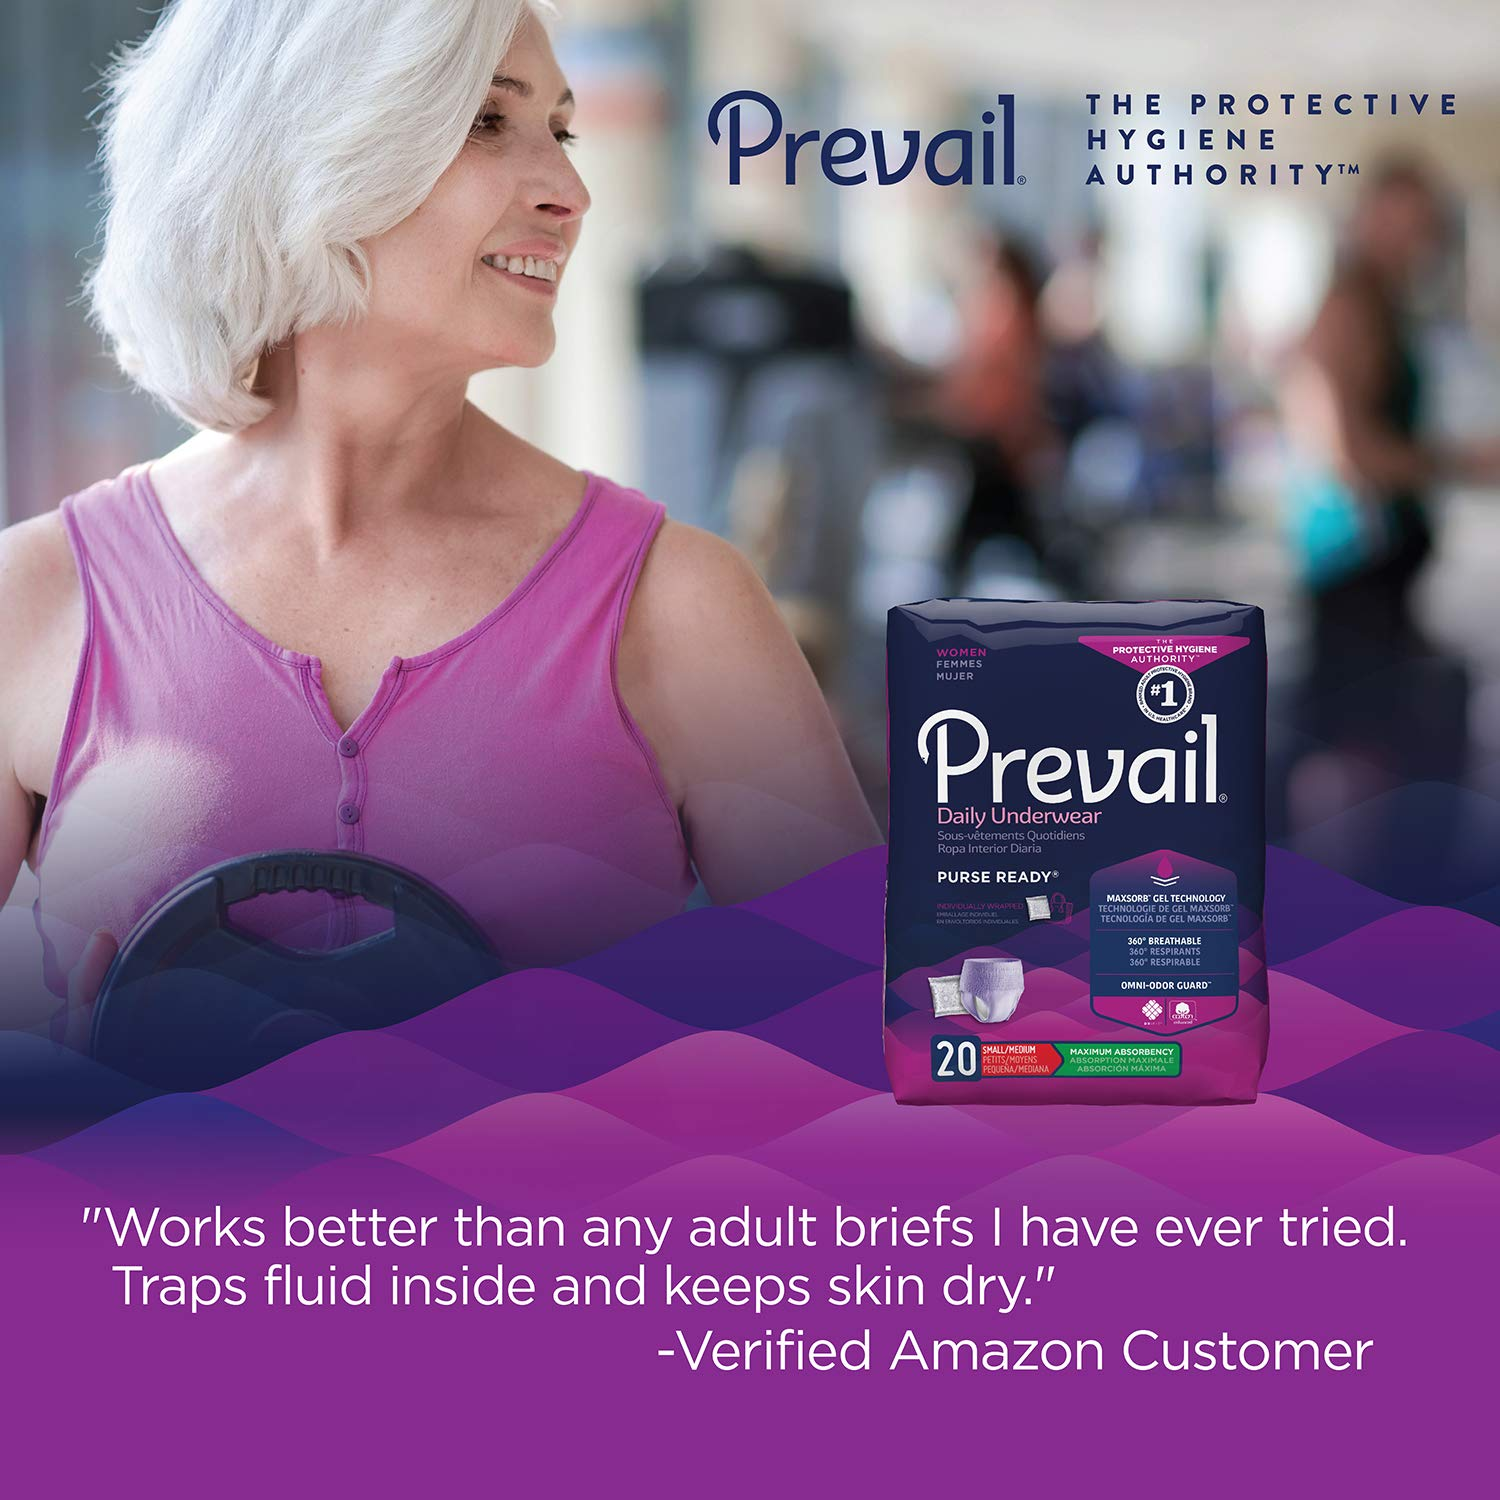 Amazon.com: Prevail Maximum Absorbency Incontinence Underwear for Women, Extra Large, 48 Count: Health & Personal Care